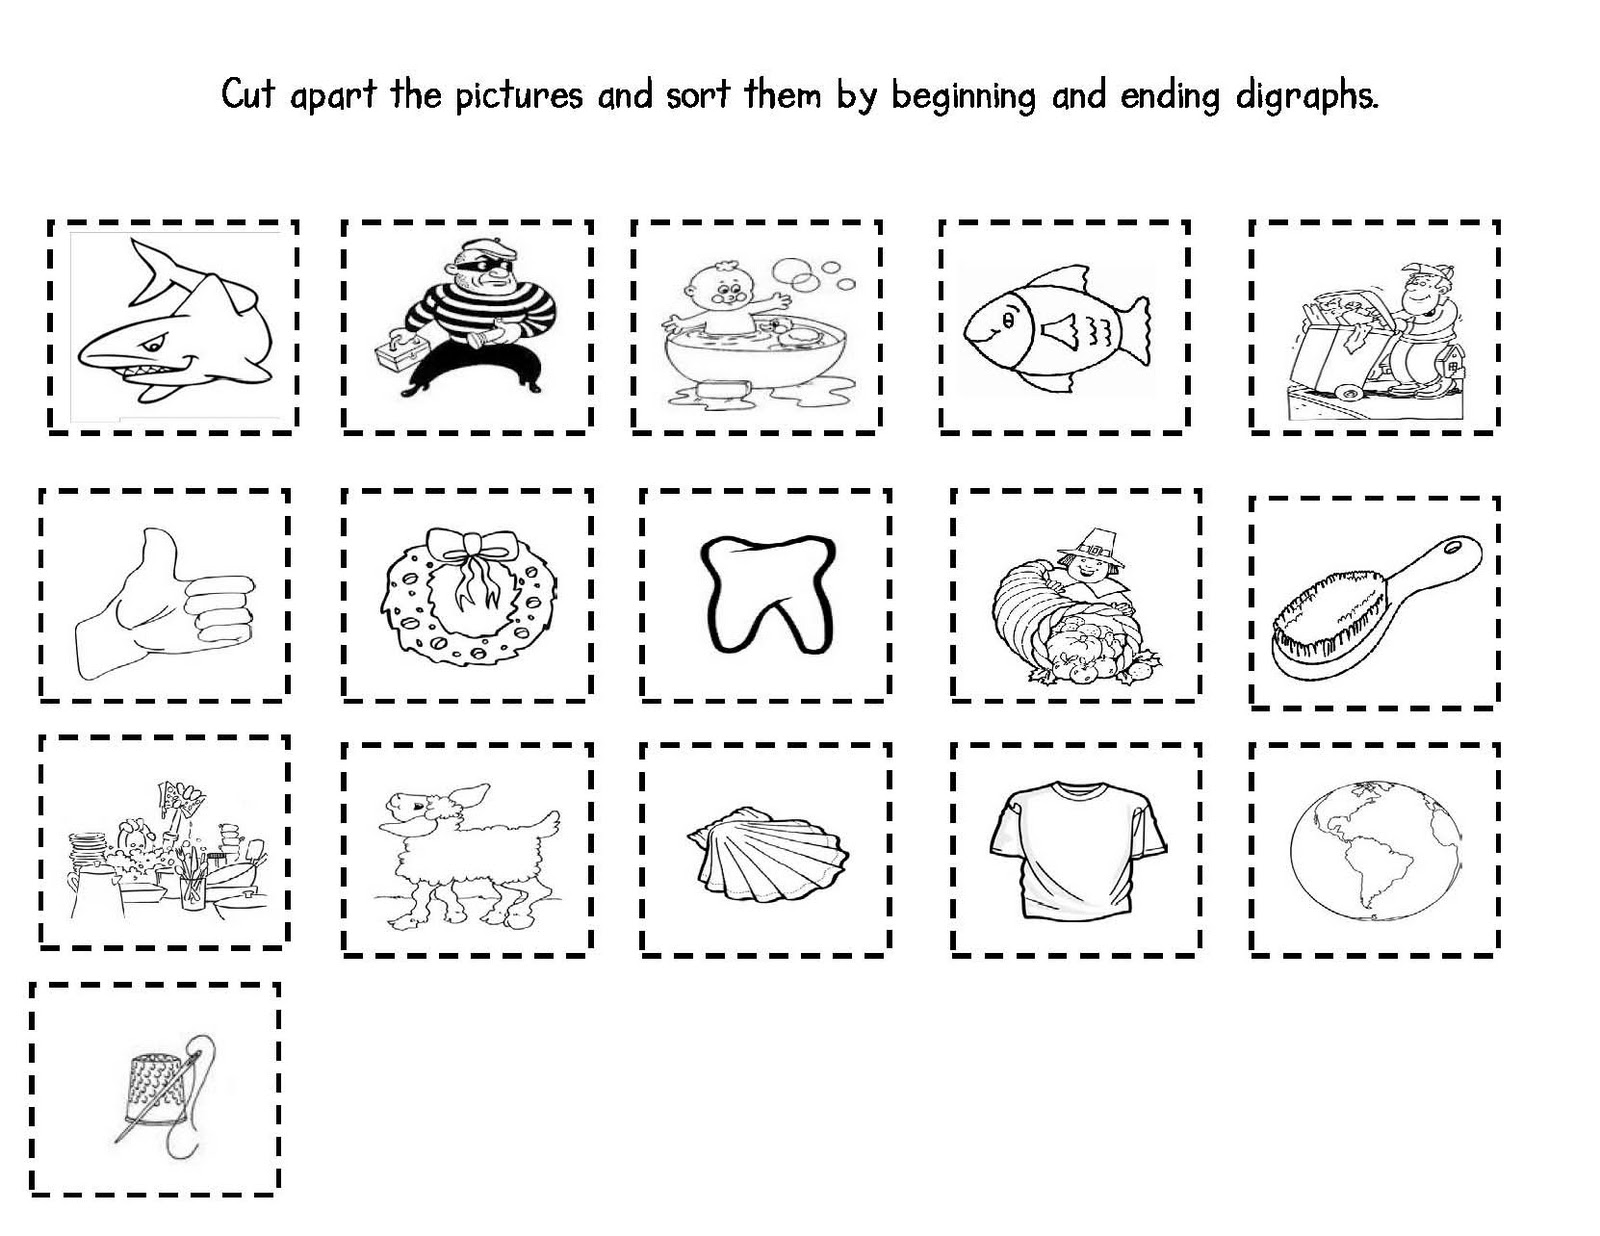 th digraph worksheets for first grade | Kampa Haus